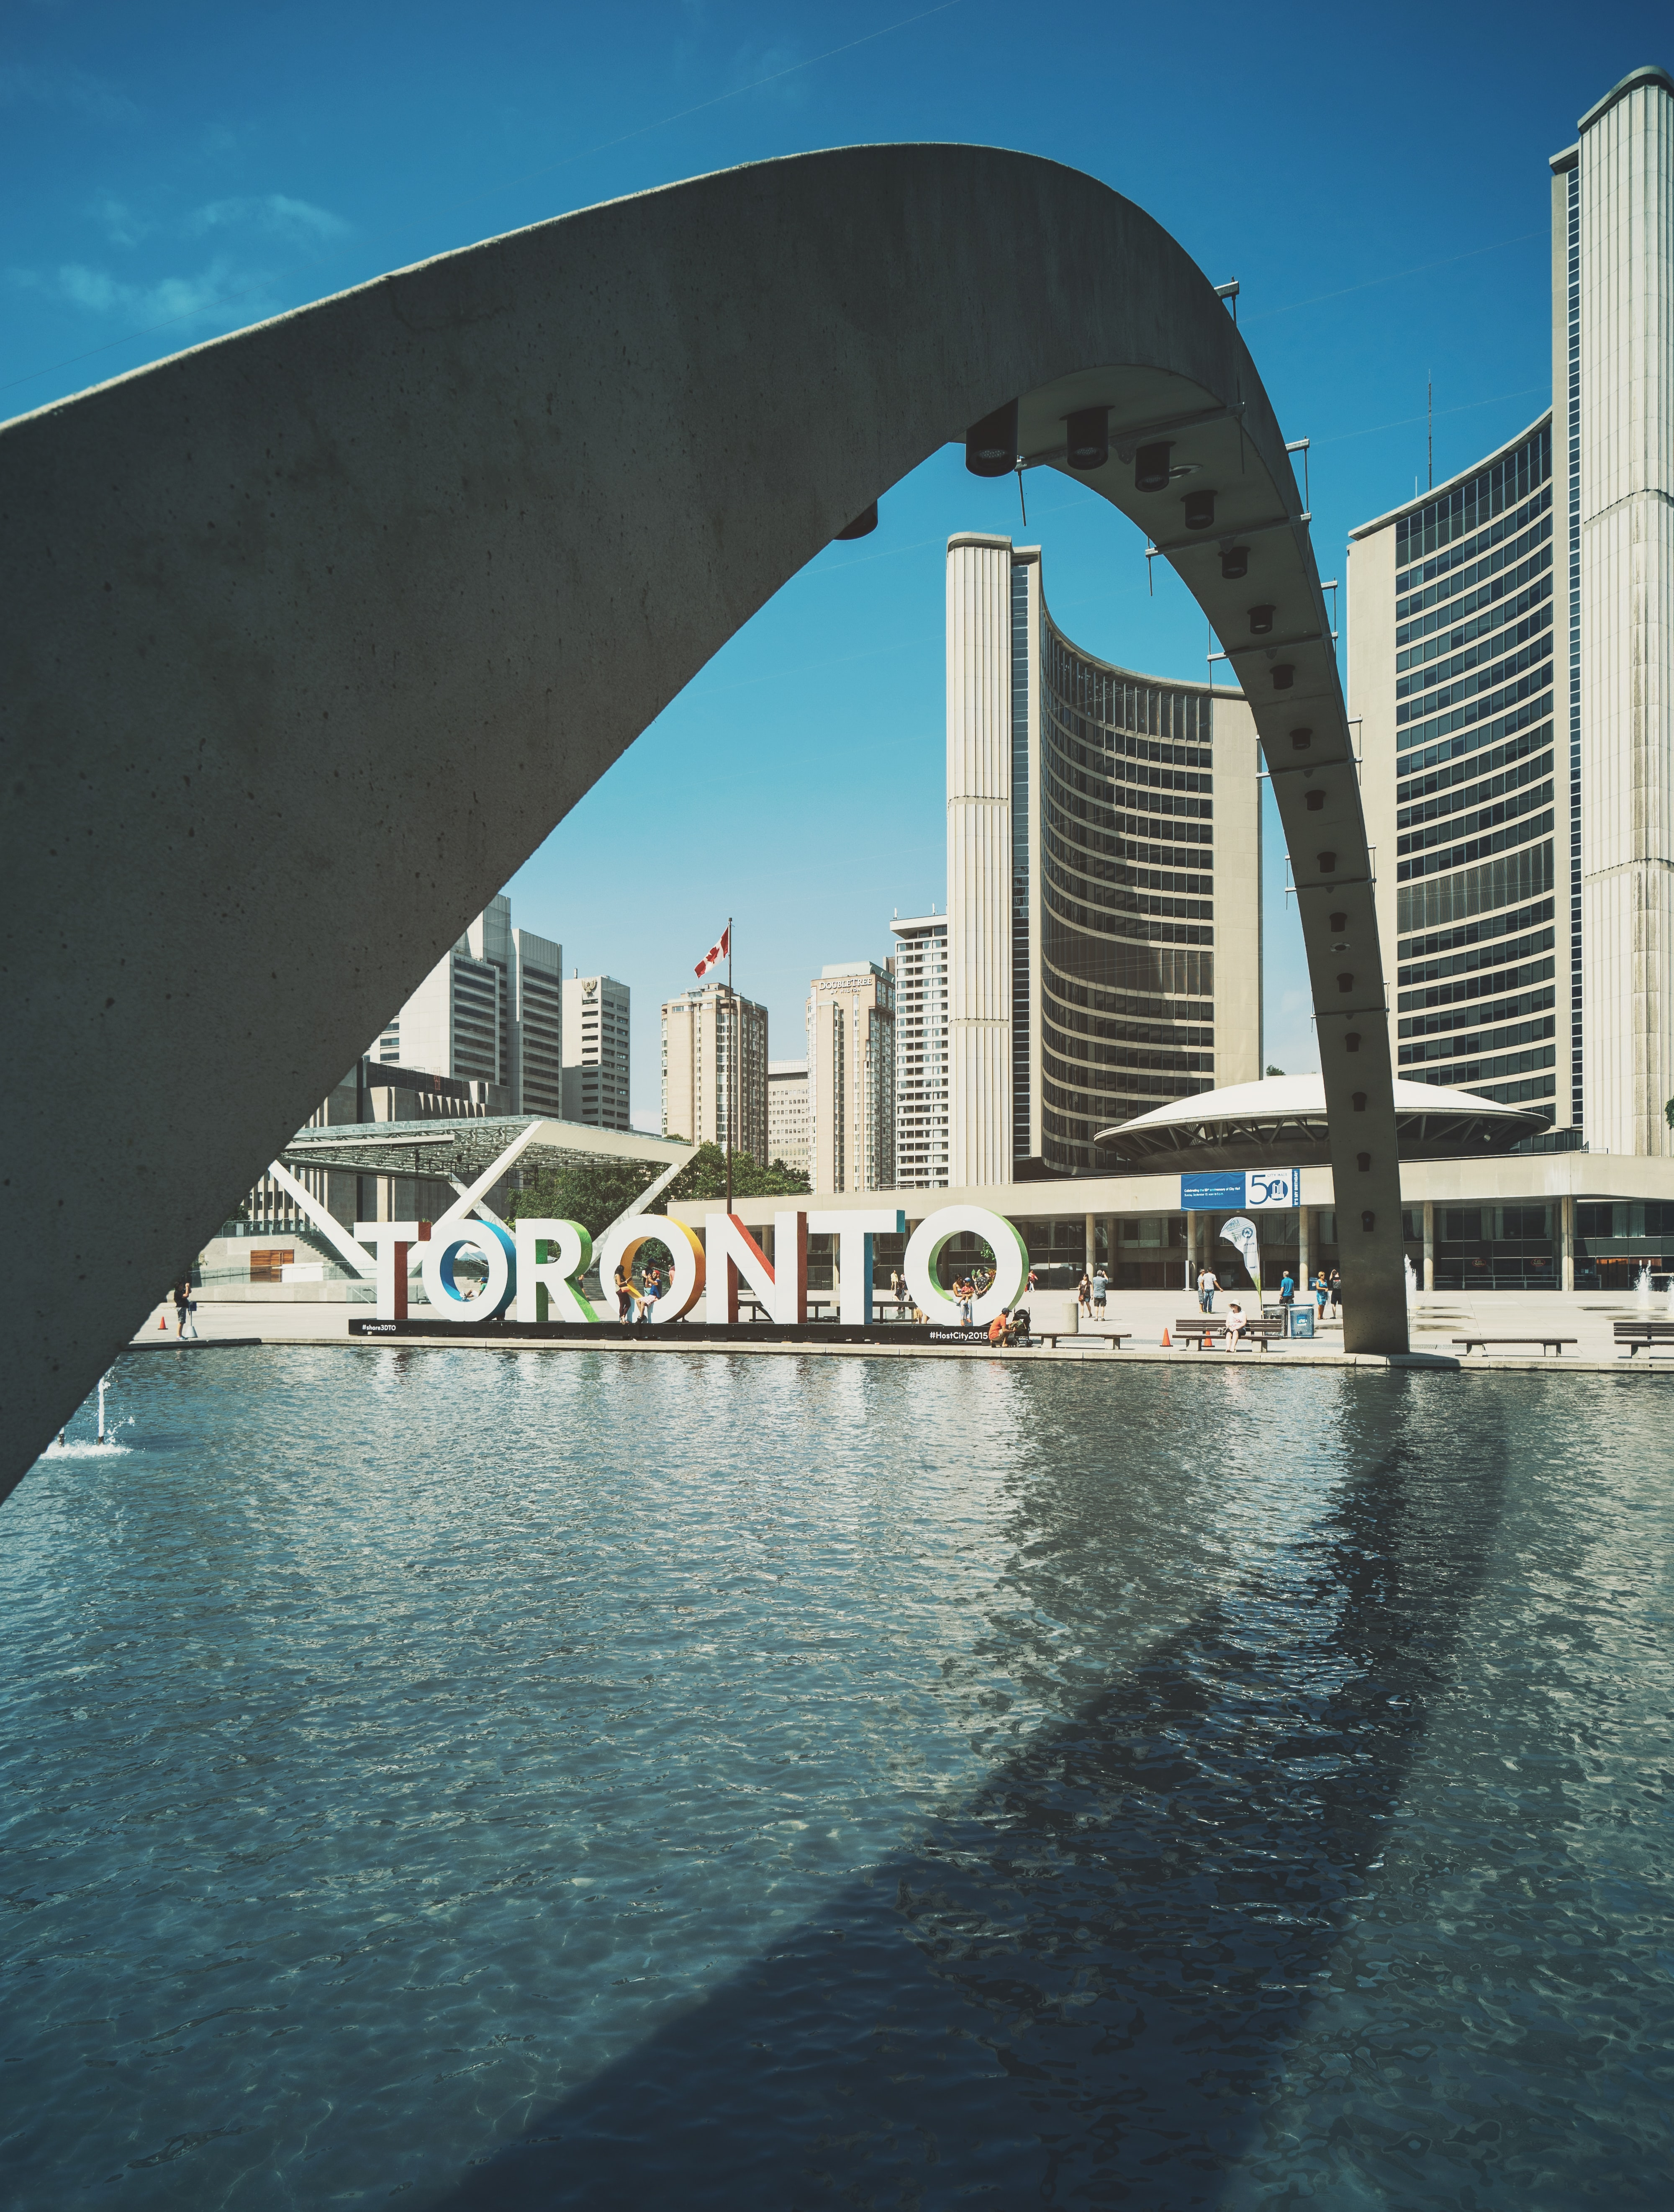 An arch over a fountain in an urban plaza in Toronto